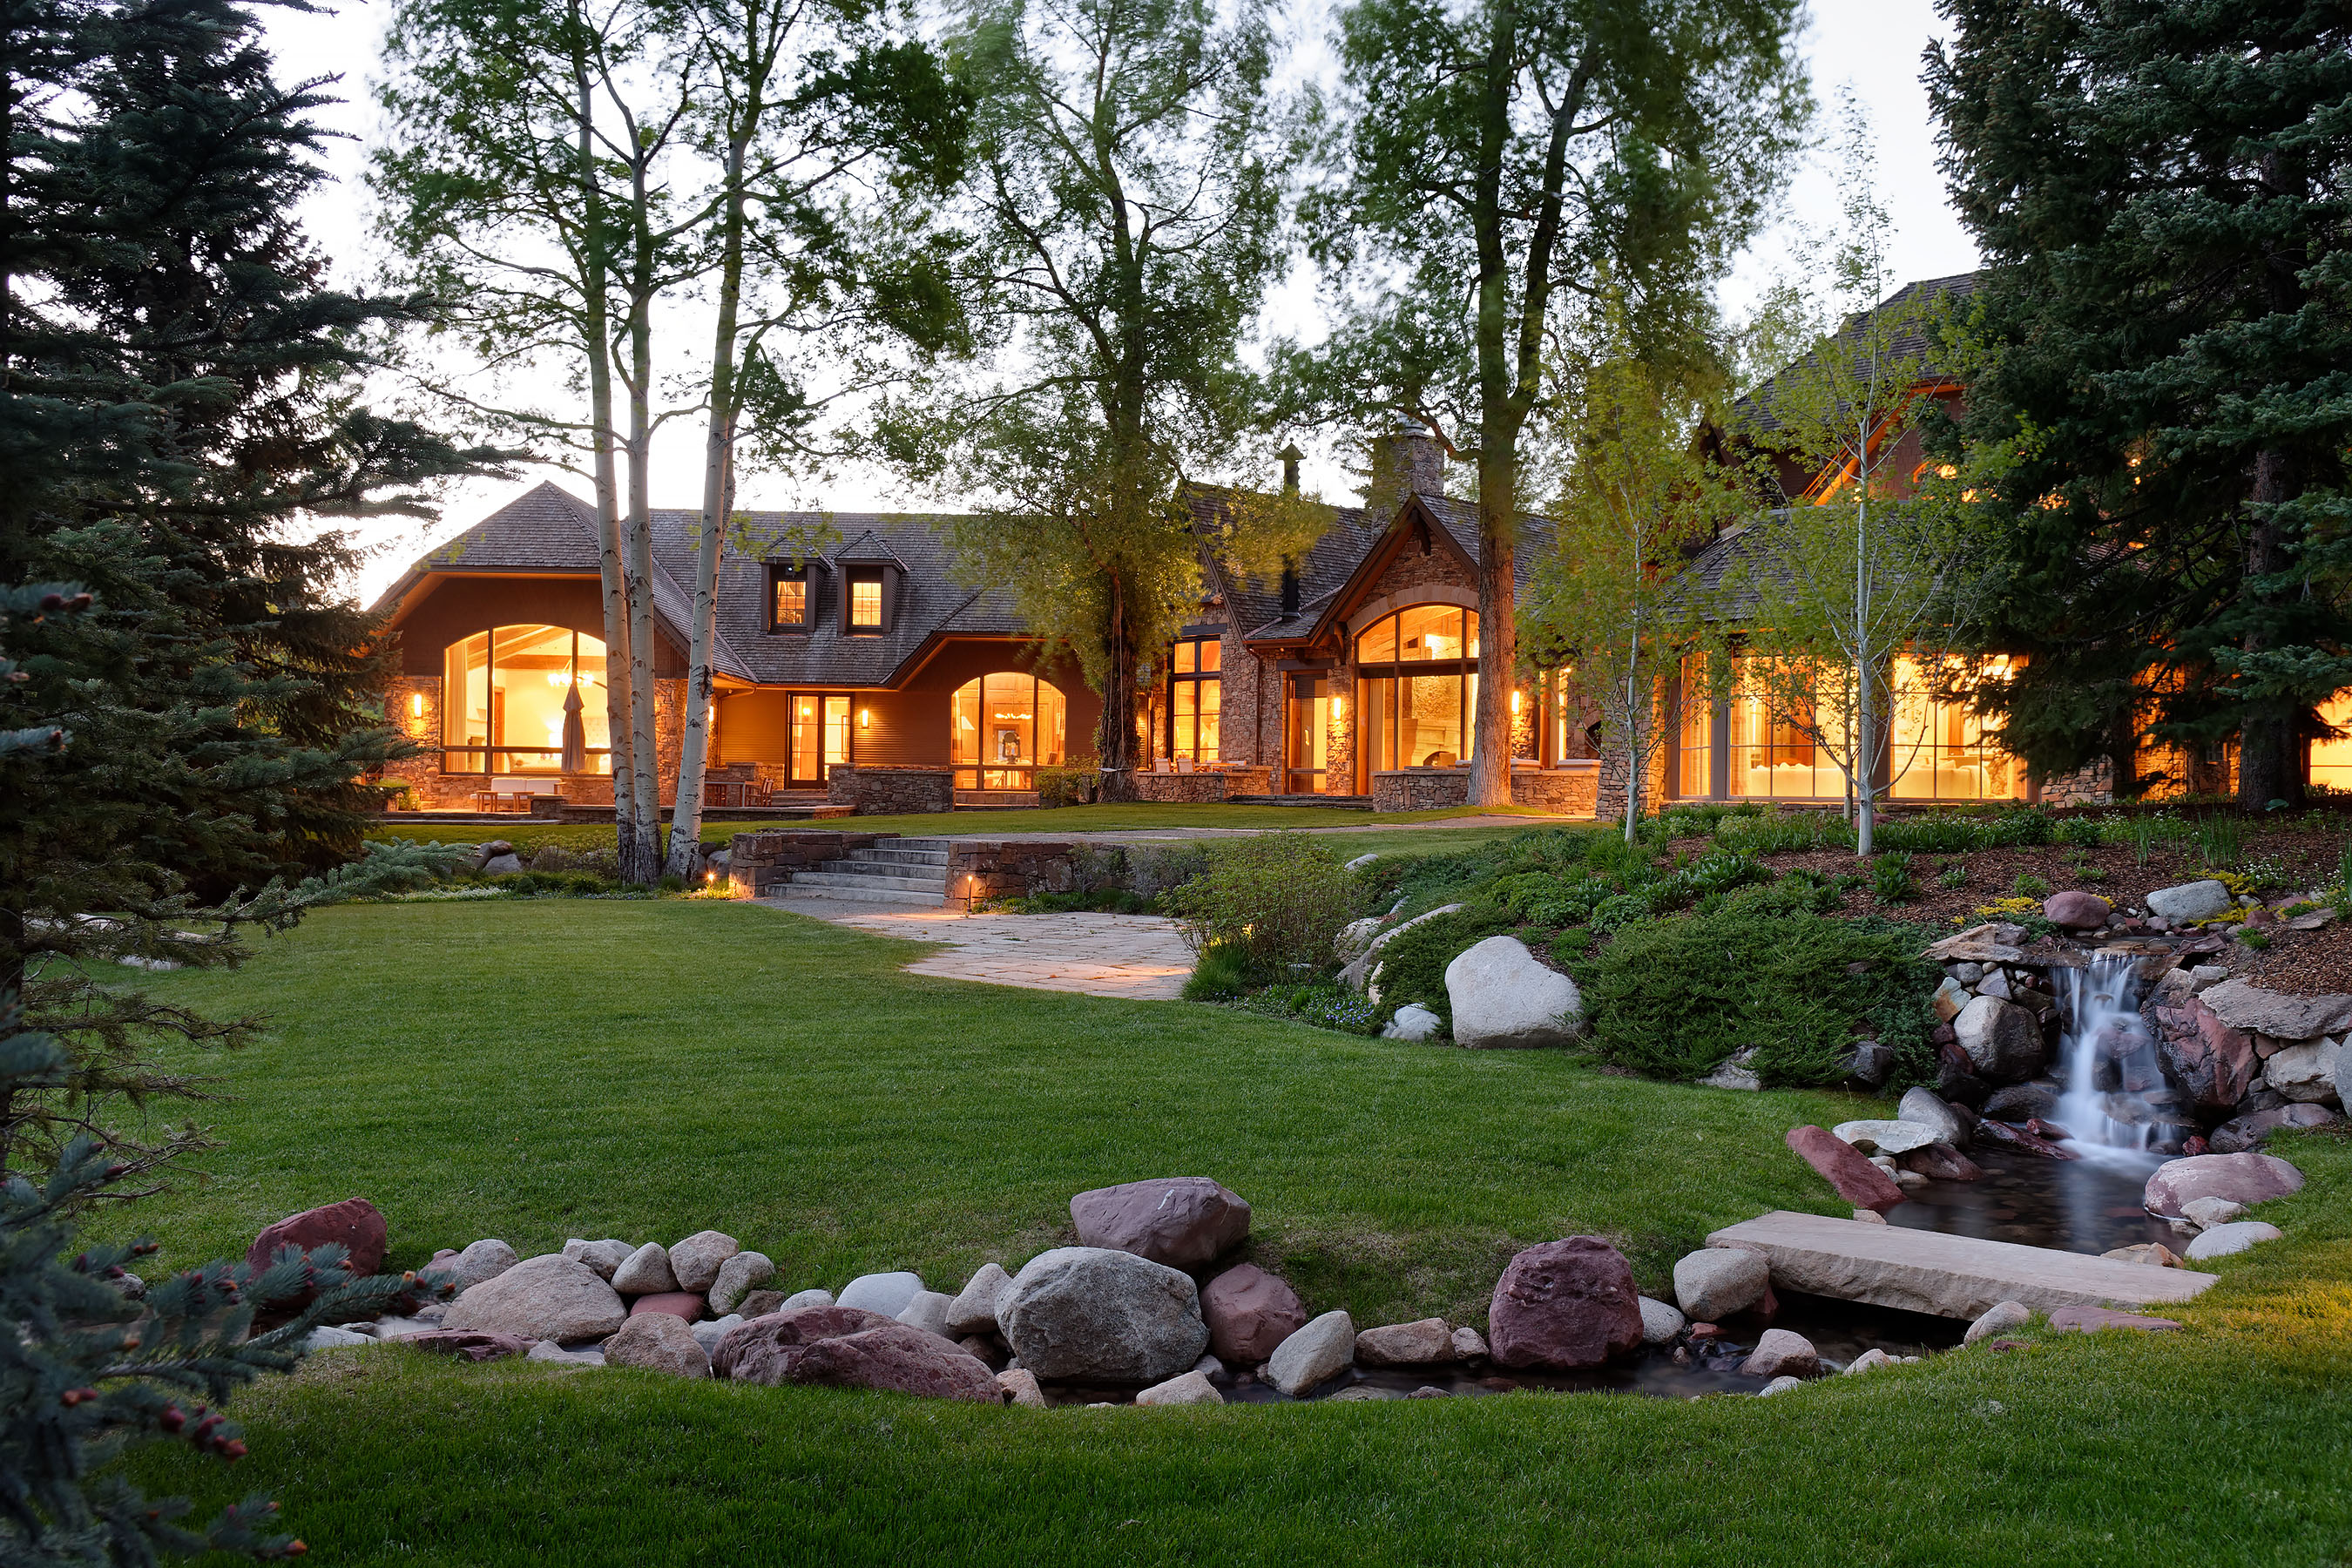 Casa Unifamiliar por un Venta en Aspen Highlands Estate 36 Glen Garry Drive Aspen, Colorado, 81611 Estados Unidos